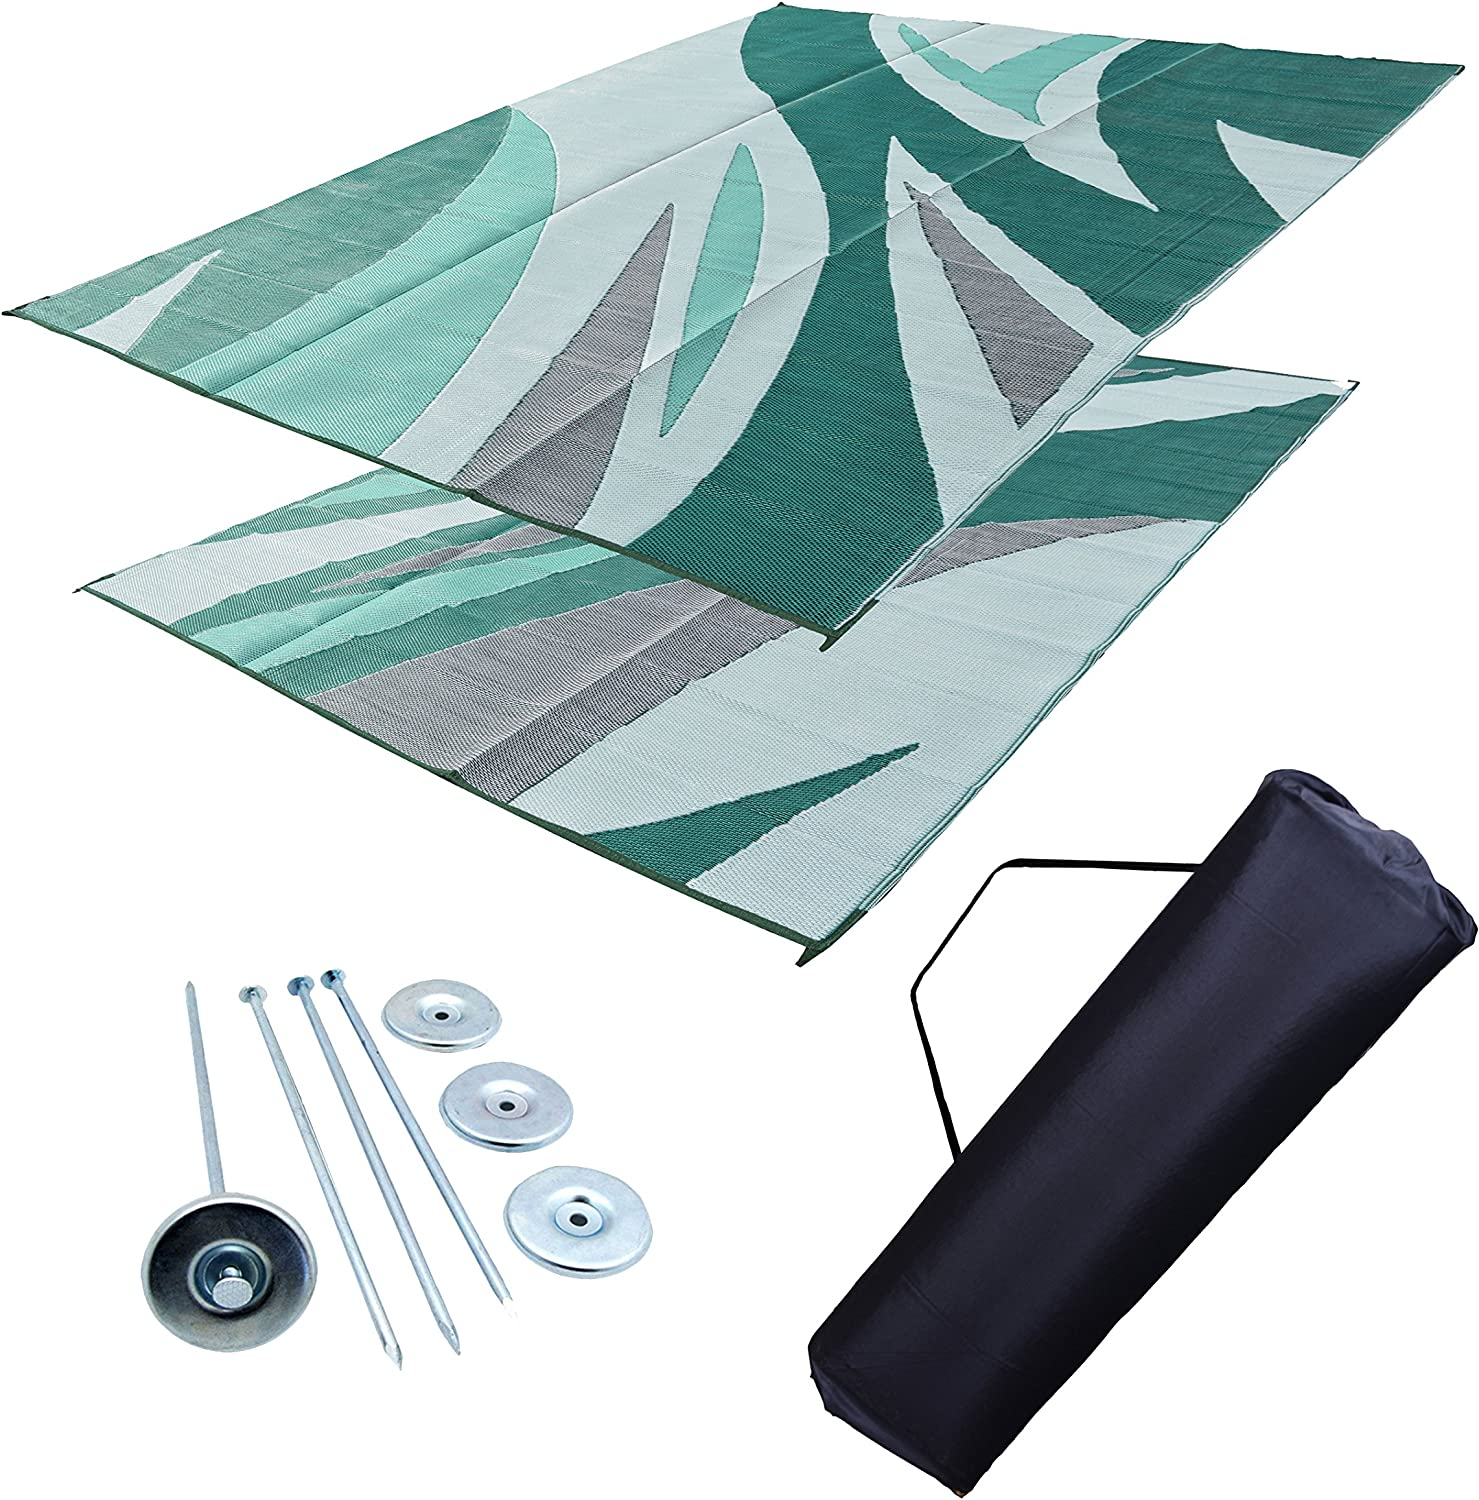 EZ Travel Mats Max 76% OFF RV Patio Leisure Awning Mat 9x12 Dallas Mall Outdoor